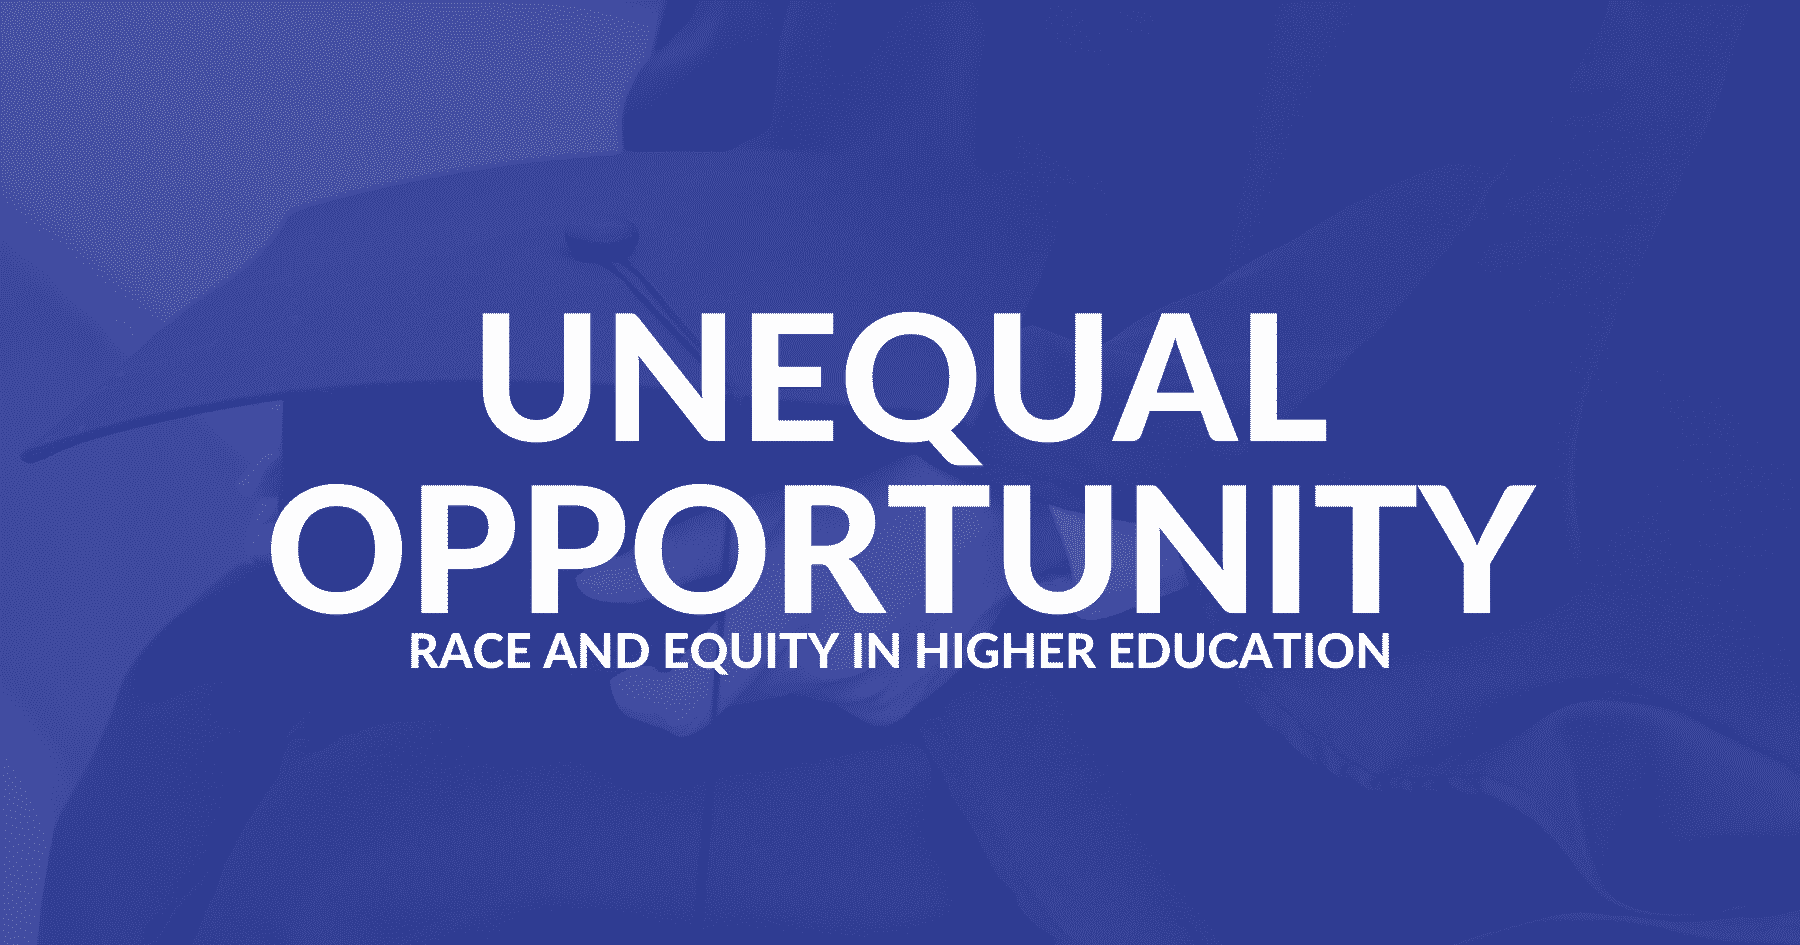 Unequal Opportunity Race and Equity in Higher Education